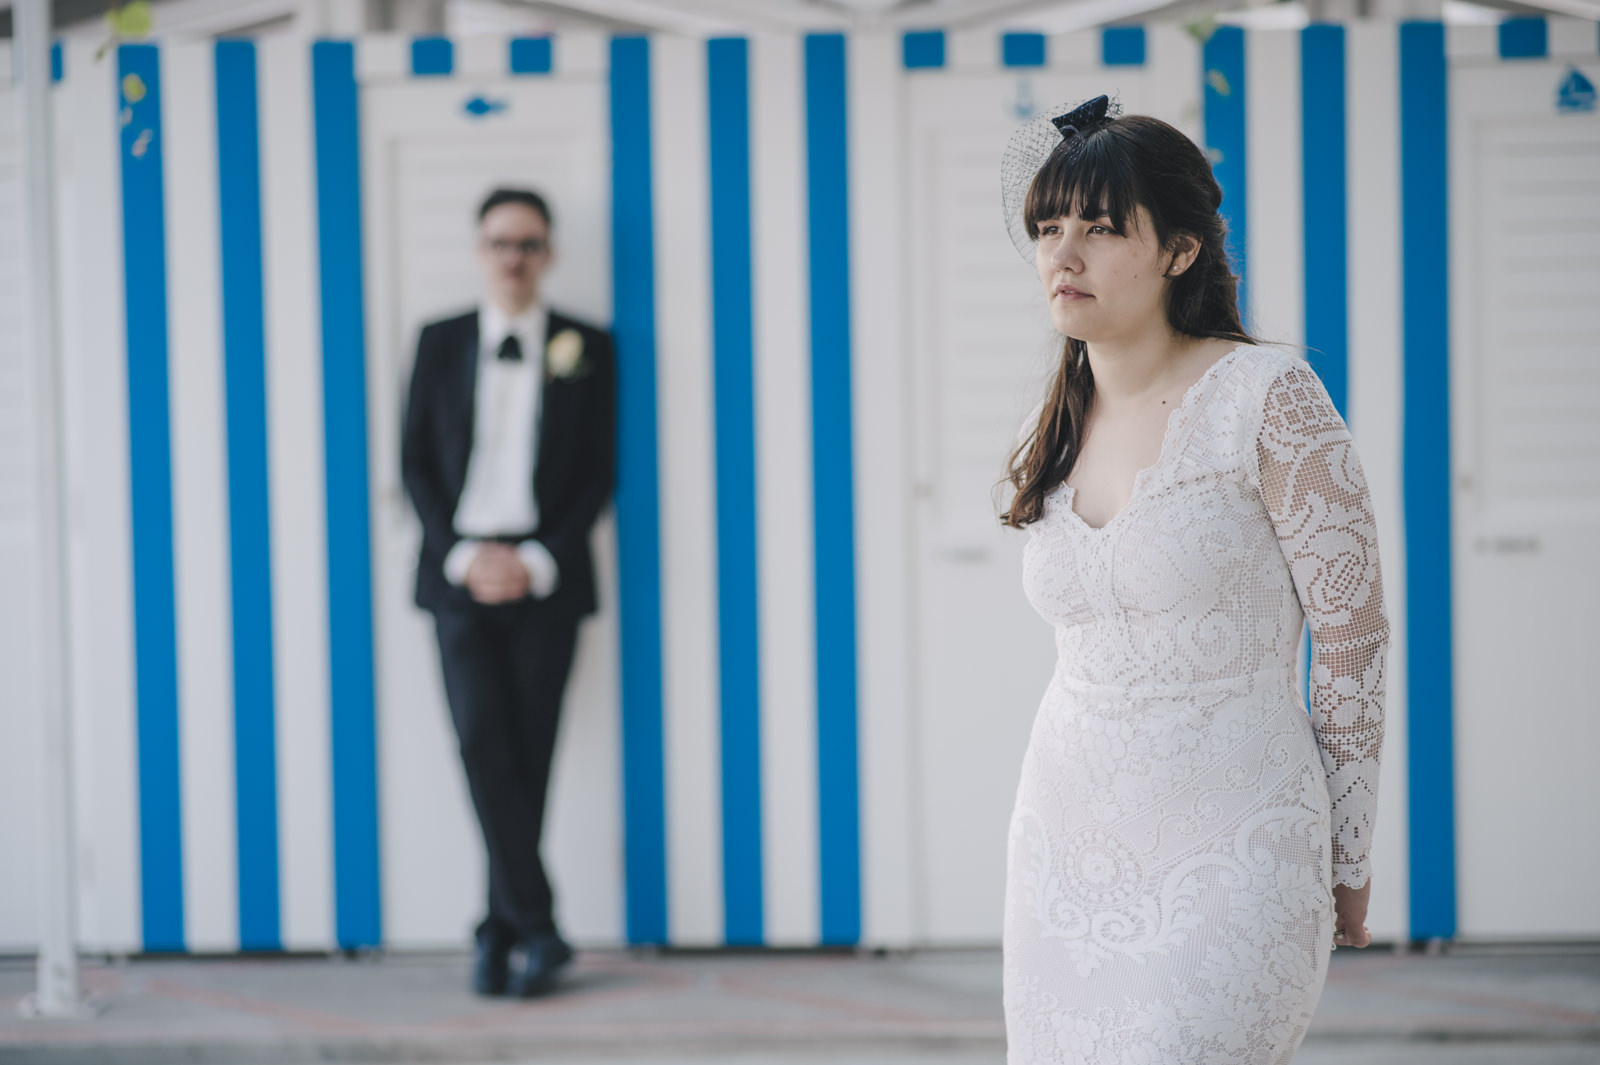 bride and groom's portrait with a white and light blue wall as background